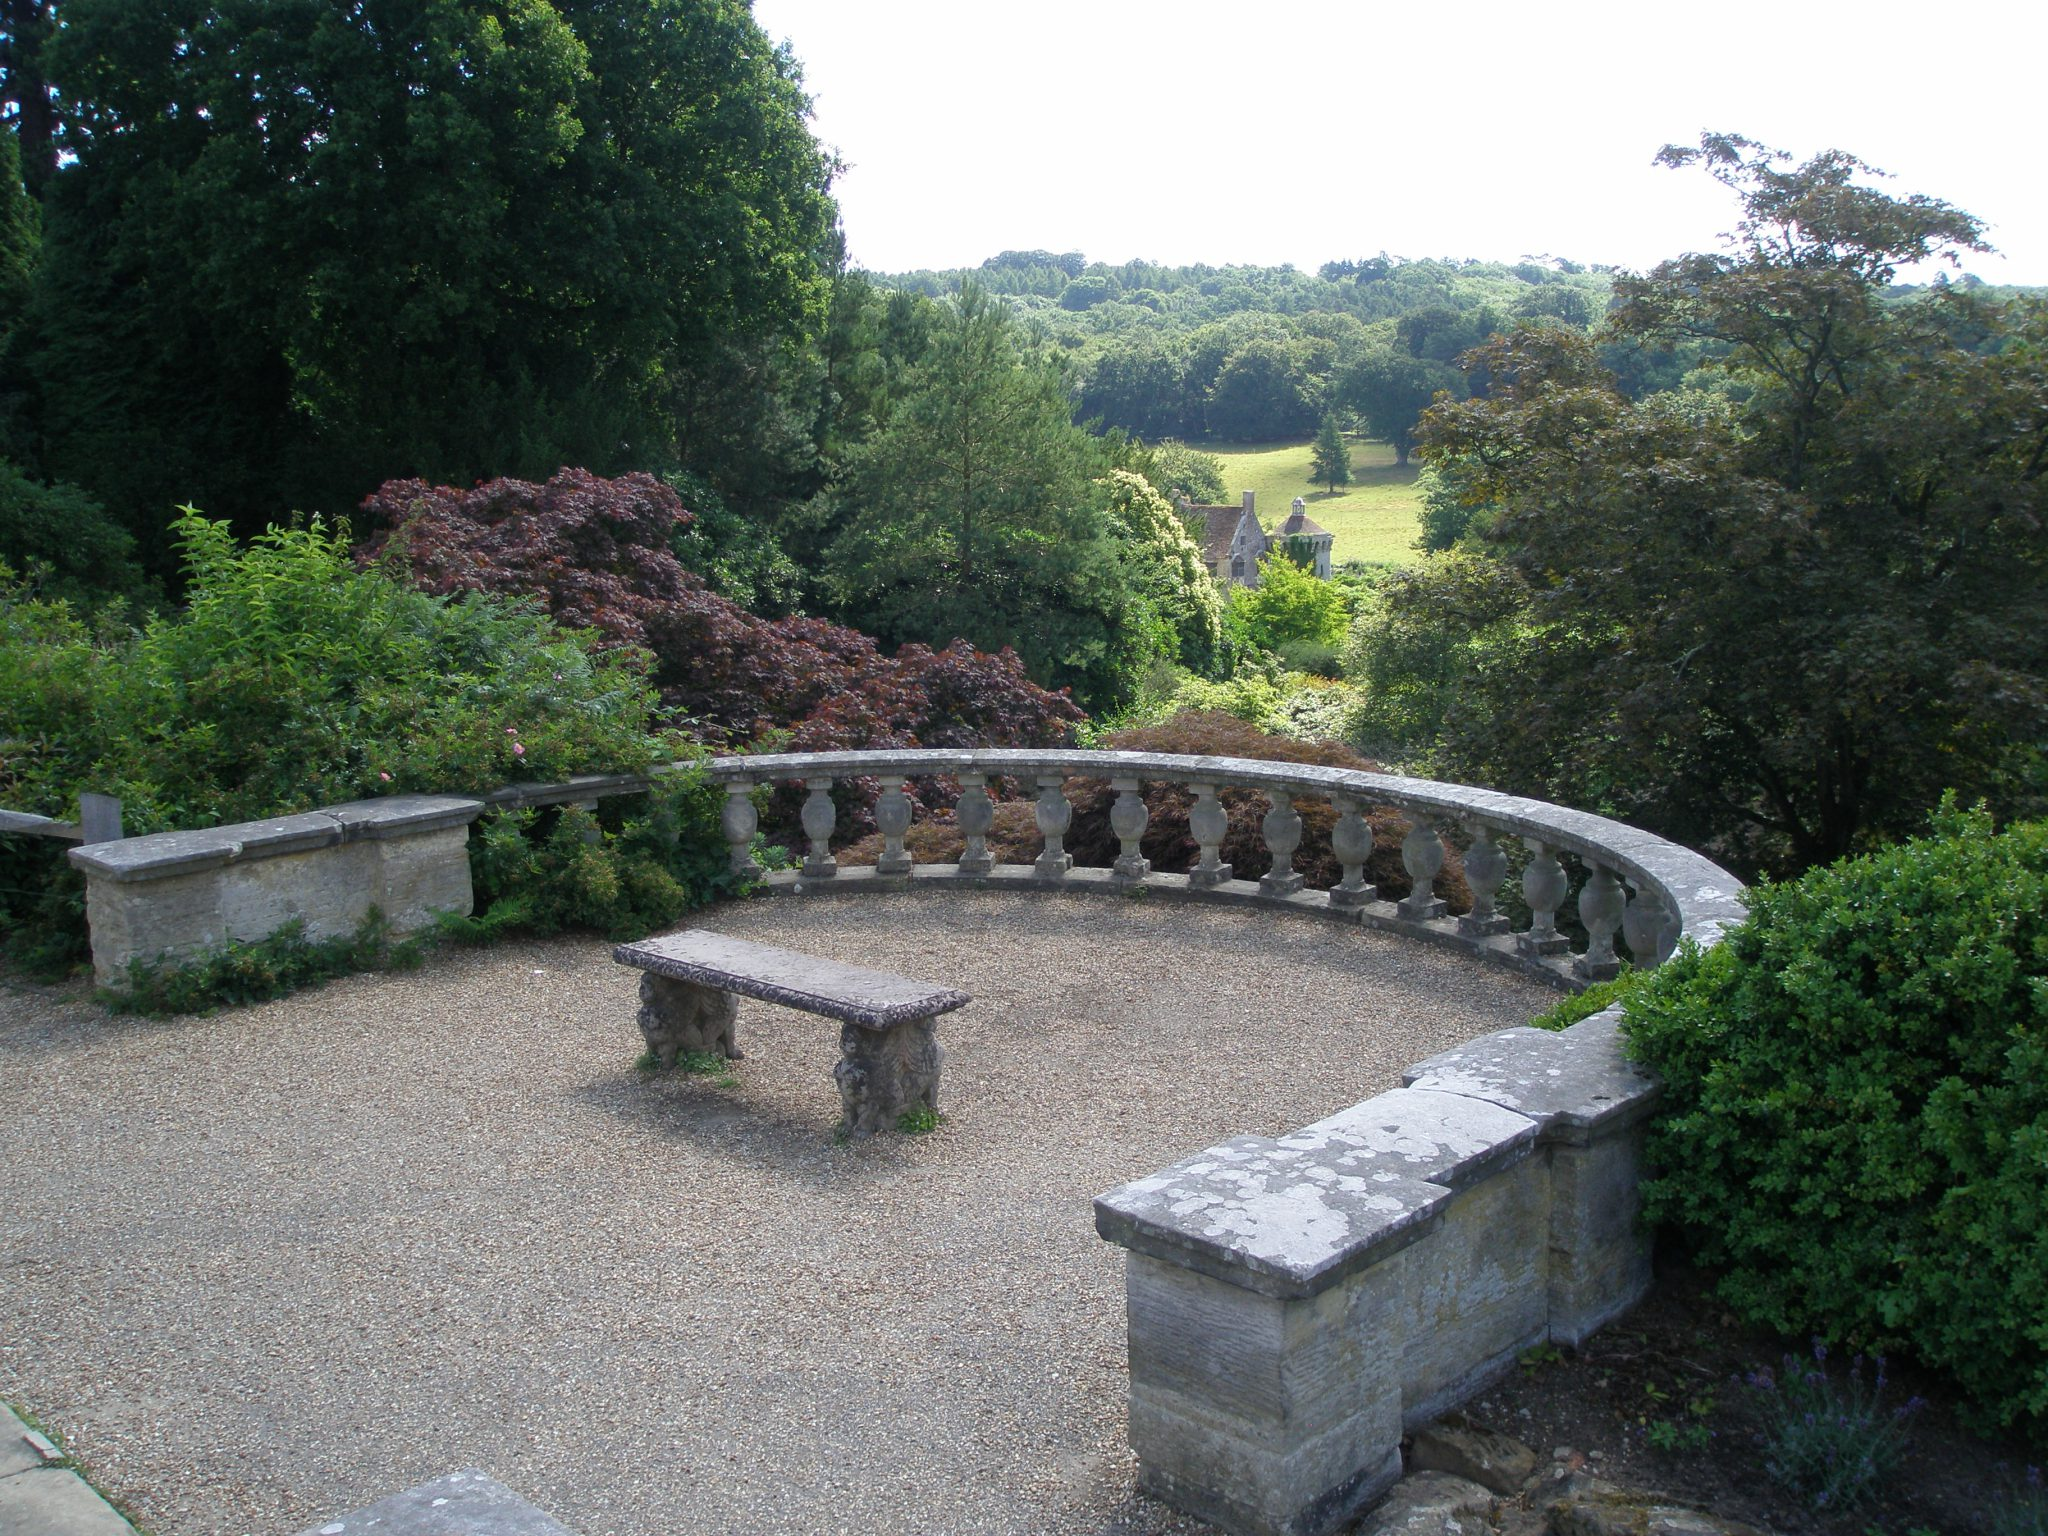 A closer look at the Bastion View's balustrade. The Quarry Garden begins directly below the balustrade.